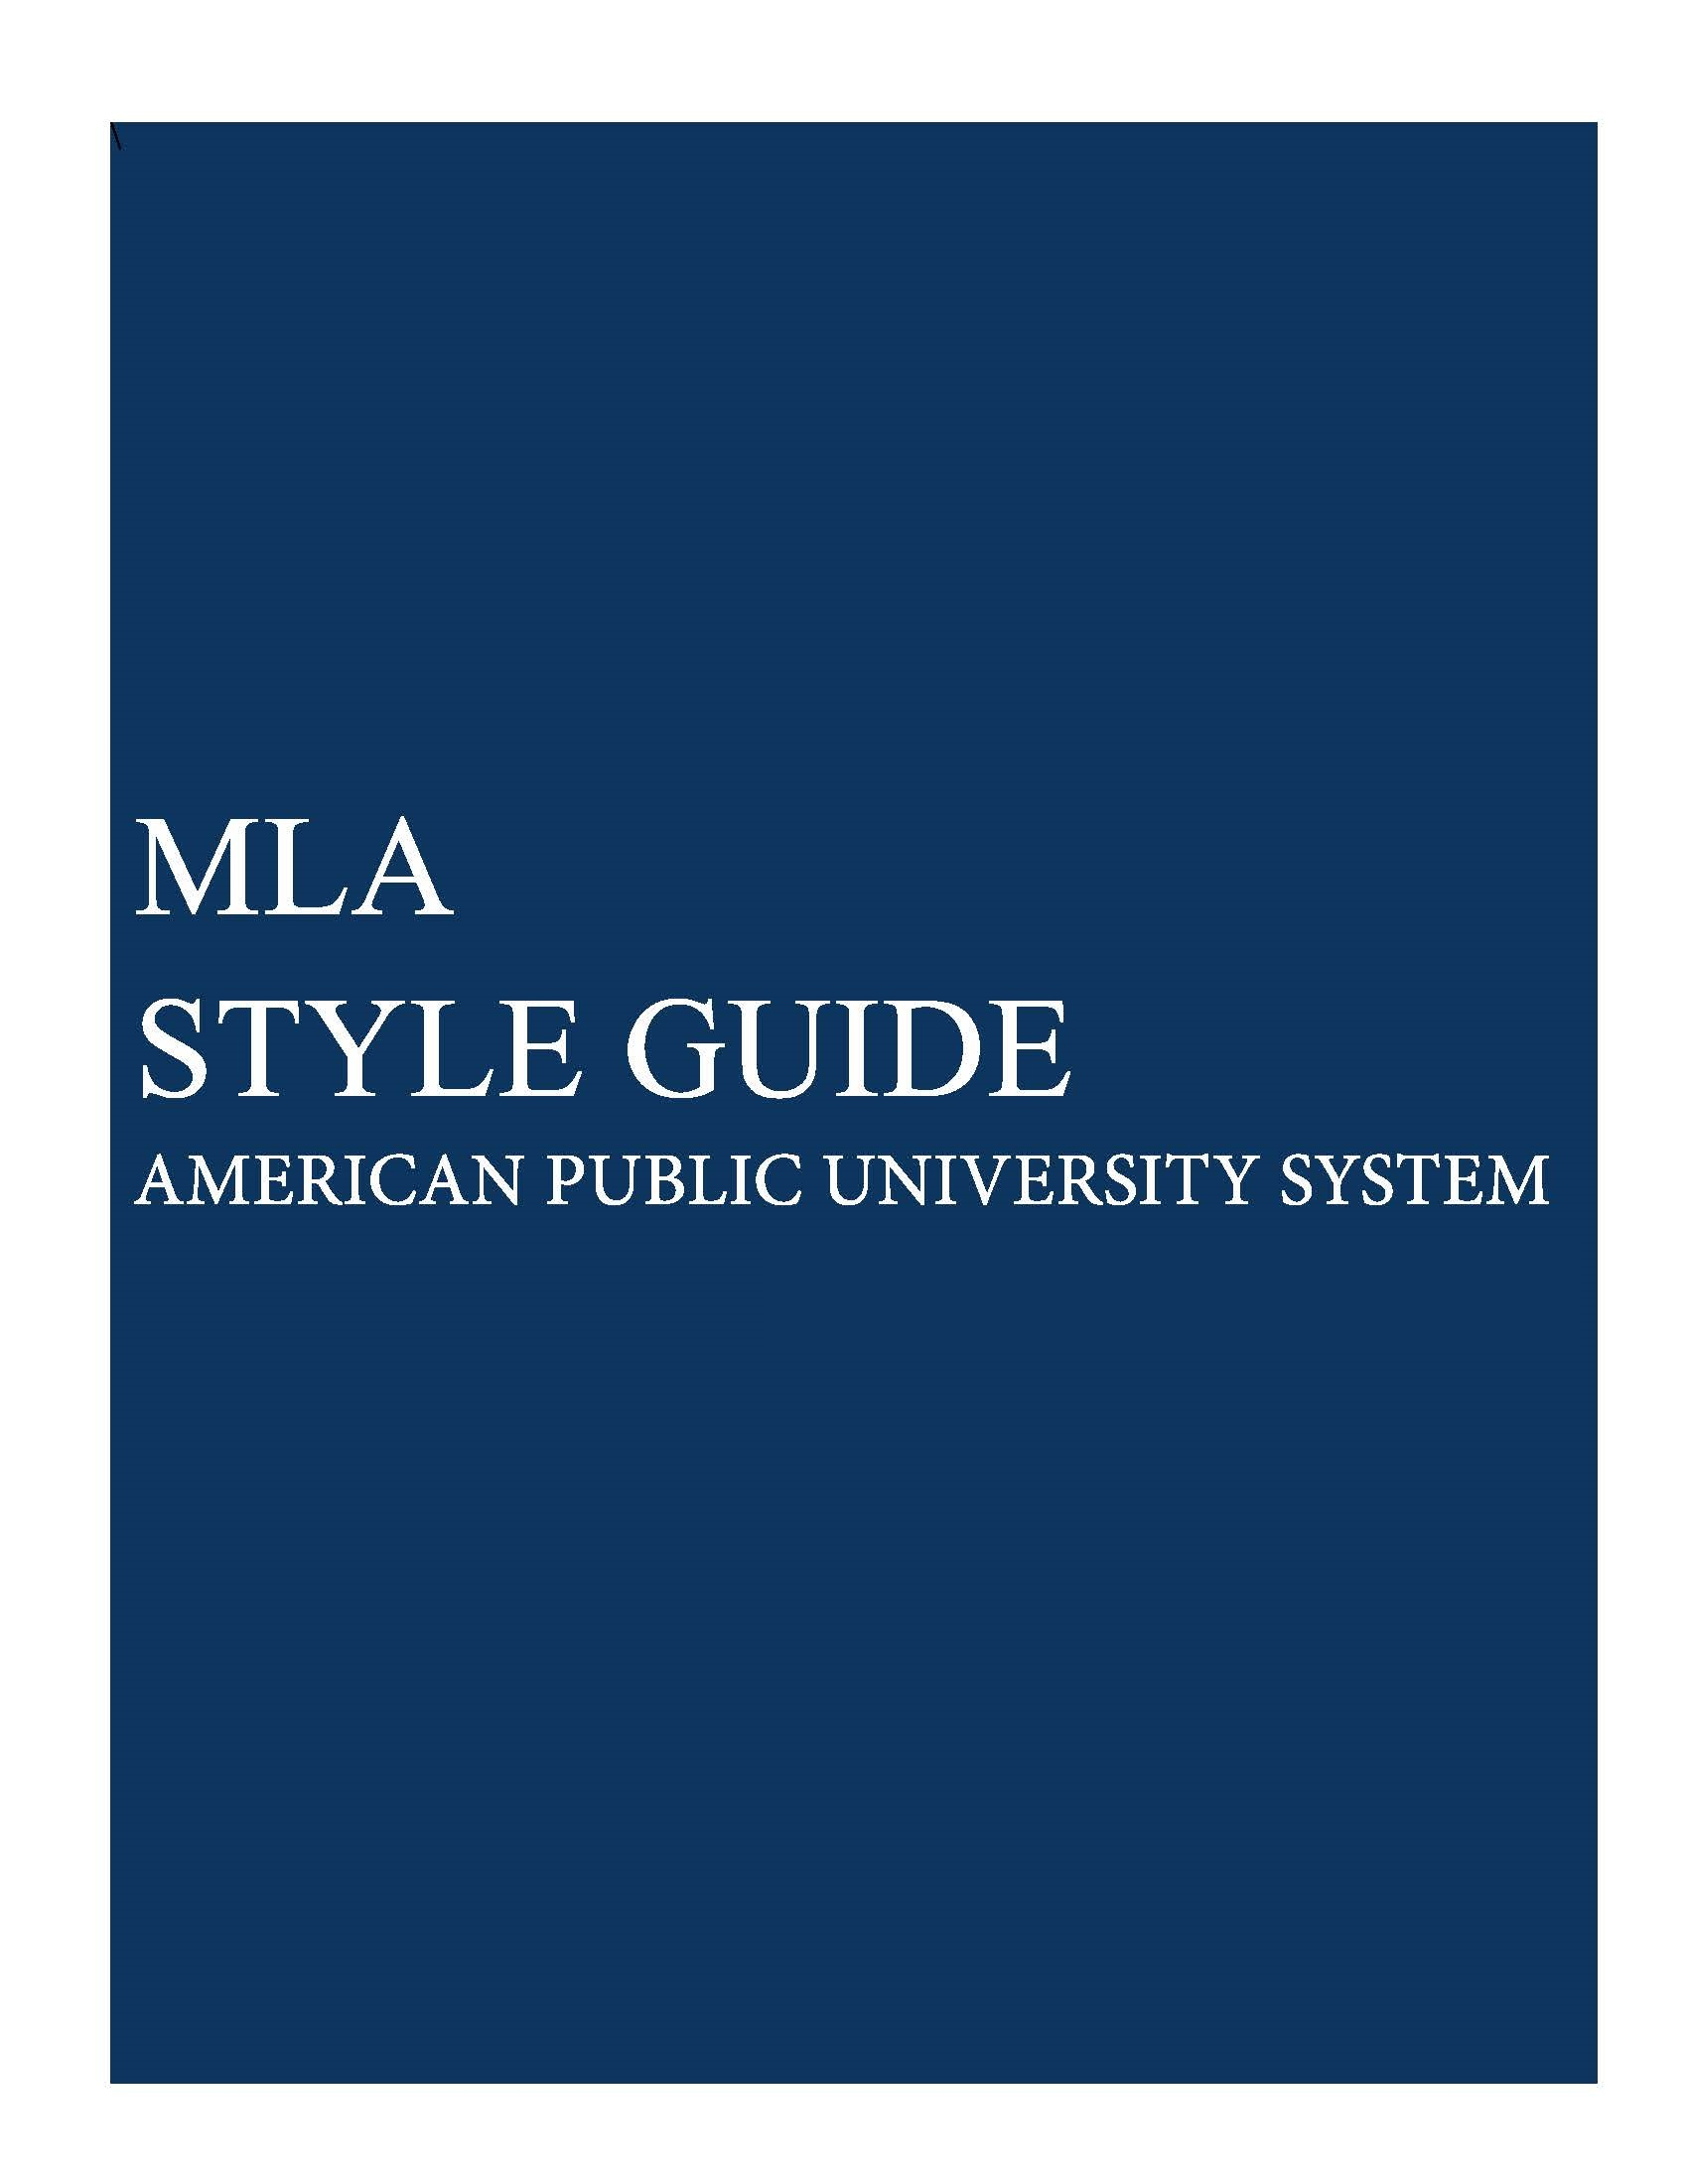 008 Research Paper Mla Handbook For Writers Of Papers 8th Edition Cover Edited Unique Pdf Free Download Full